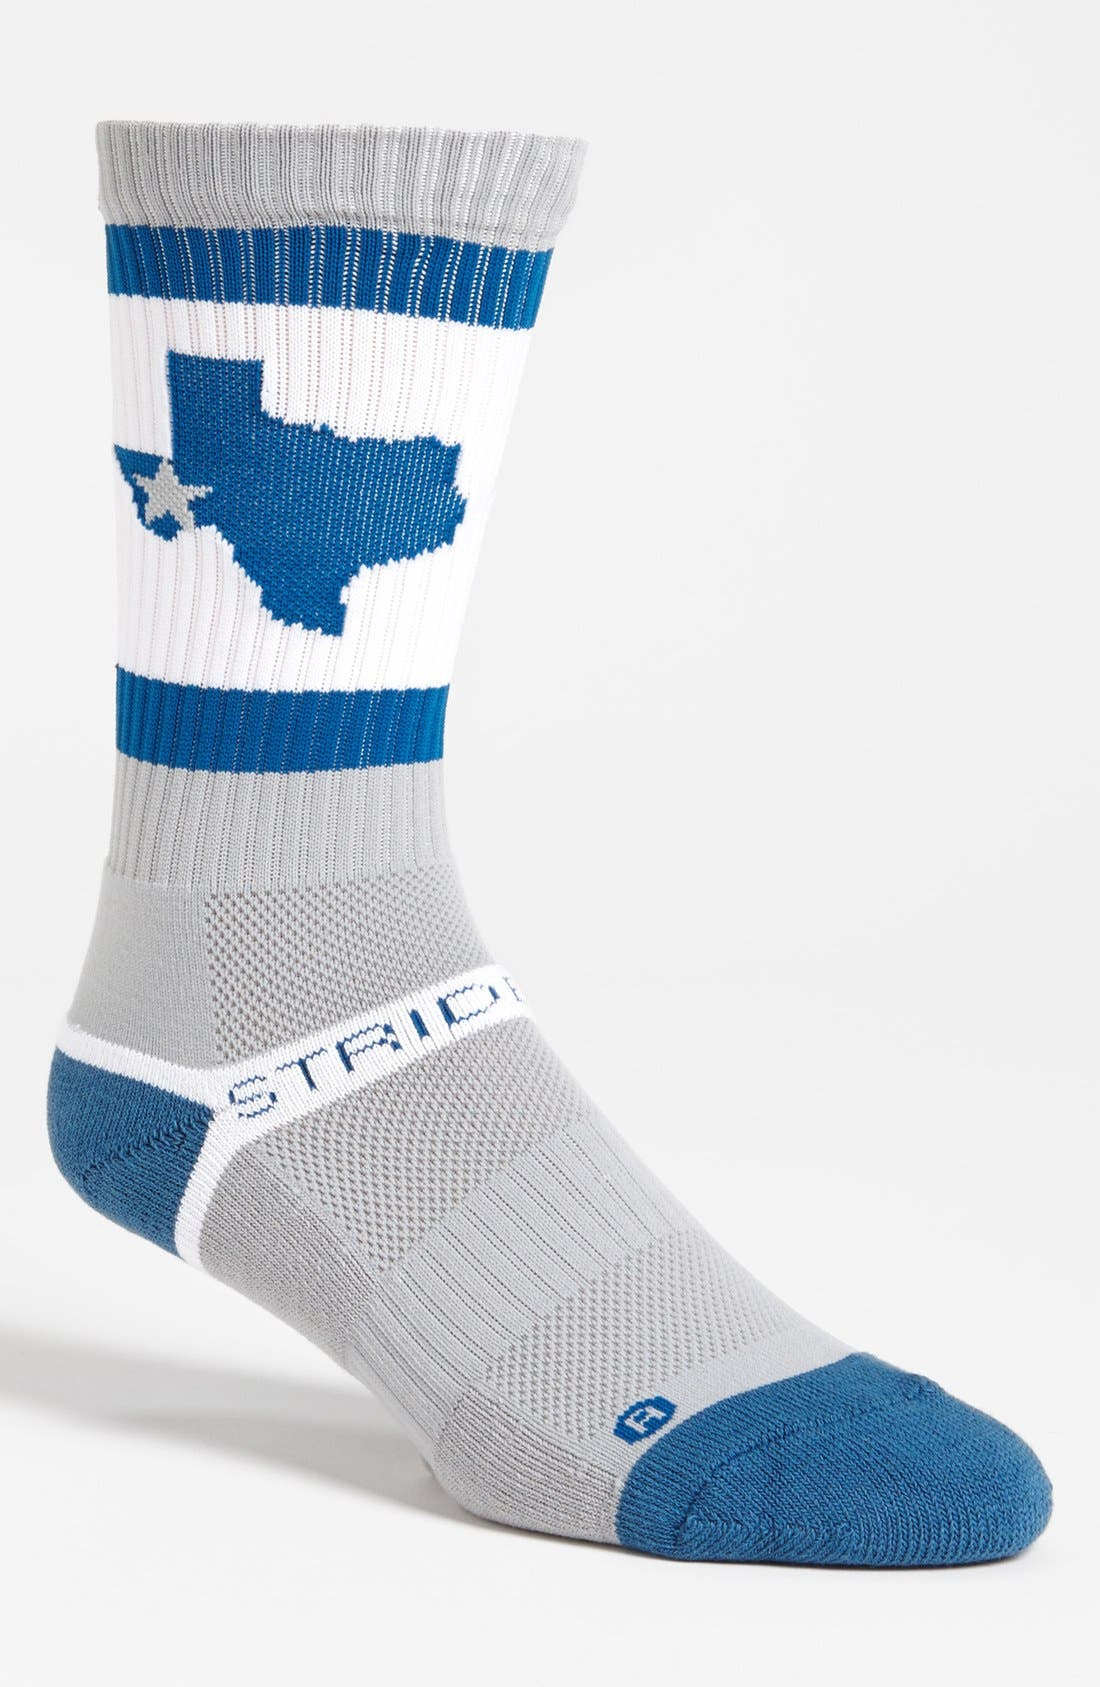 Main Image - STRIDELINE 'Texas' Socks